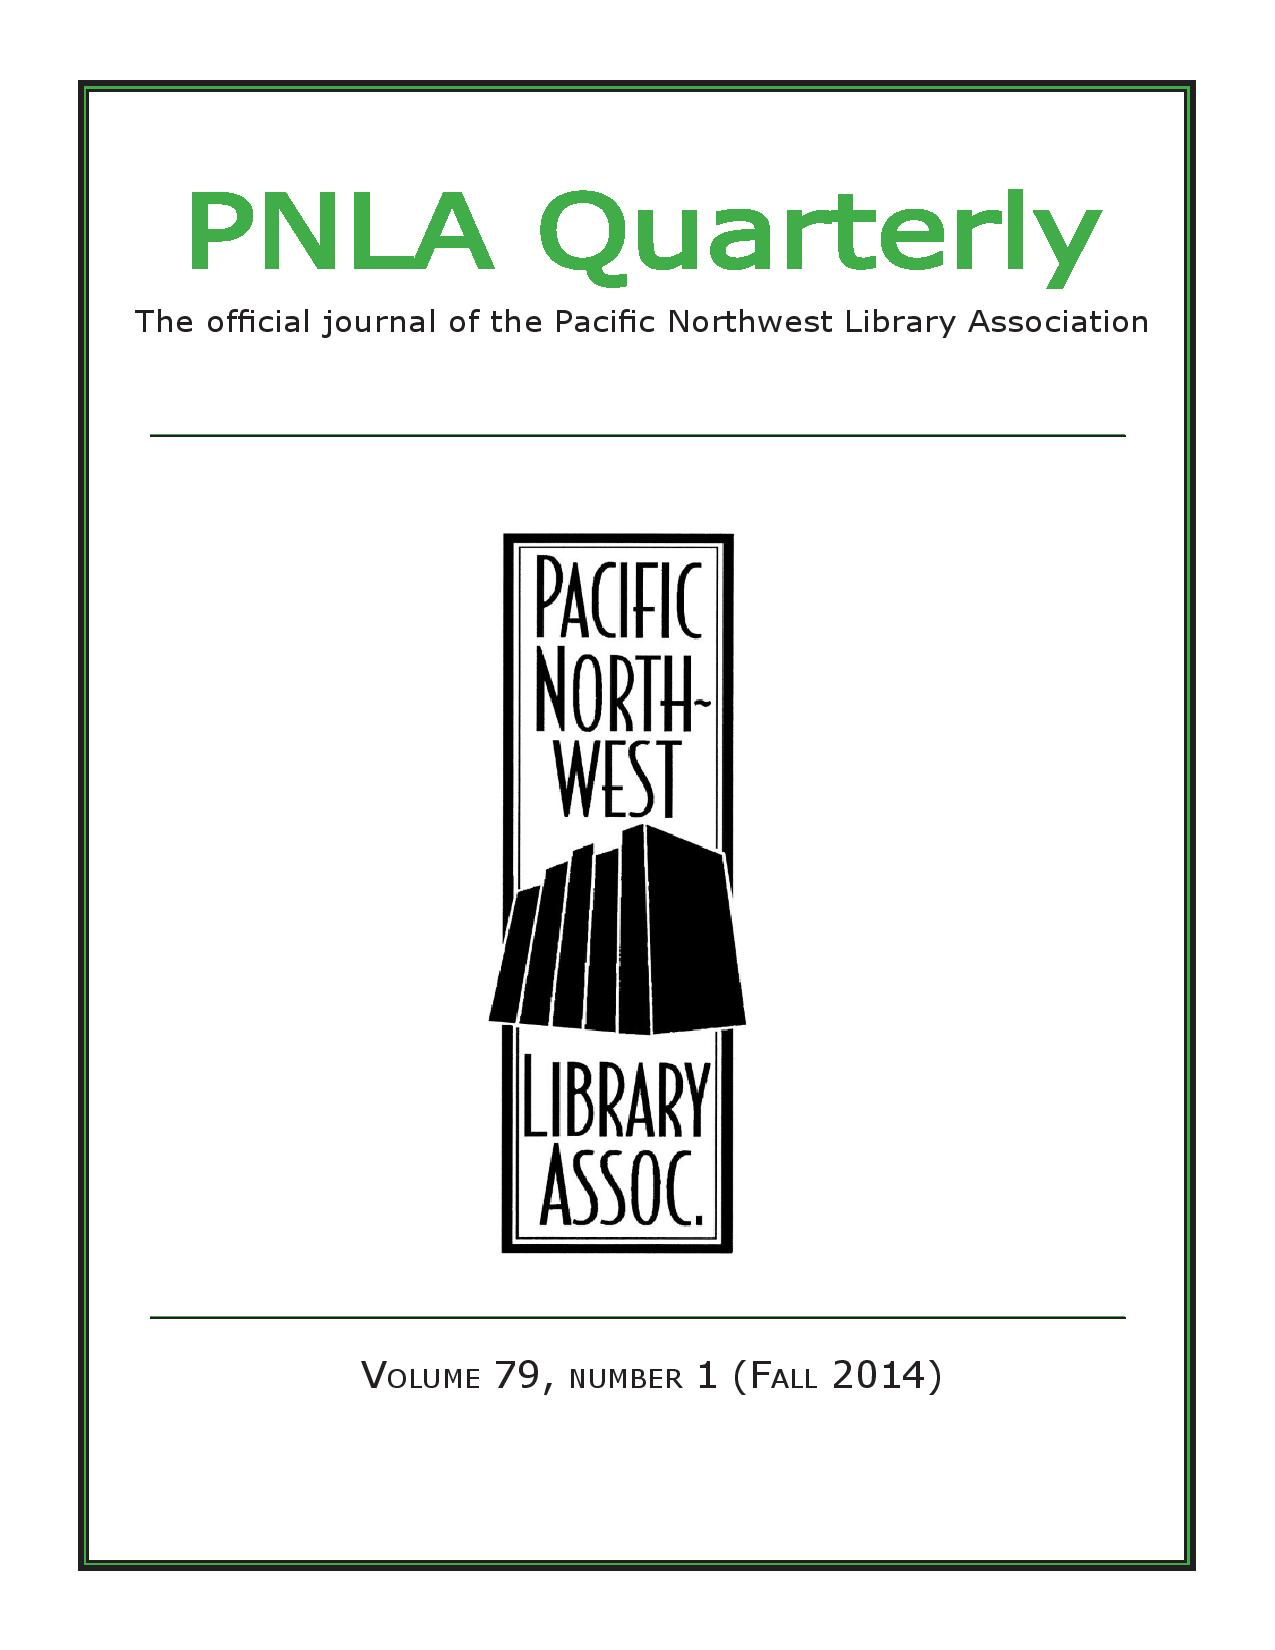 'If you seek her monument, look around': Mary Frances Isom and the Pacific Northwest Library Association (2014) - A biographical sketch of one of PNLA's most illustrious founders, Portland librarian Mary Frances Isom.